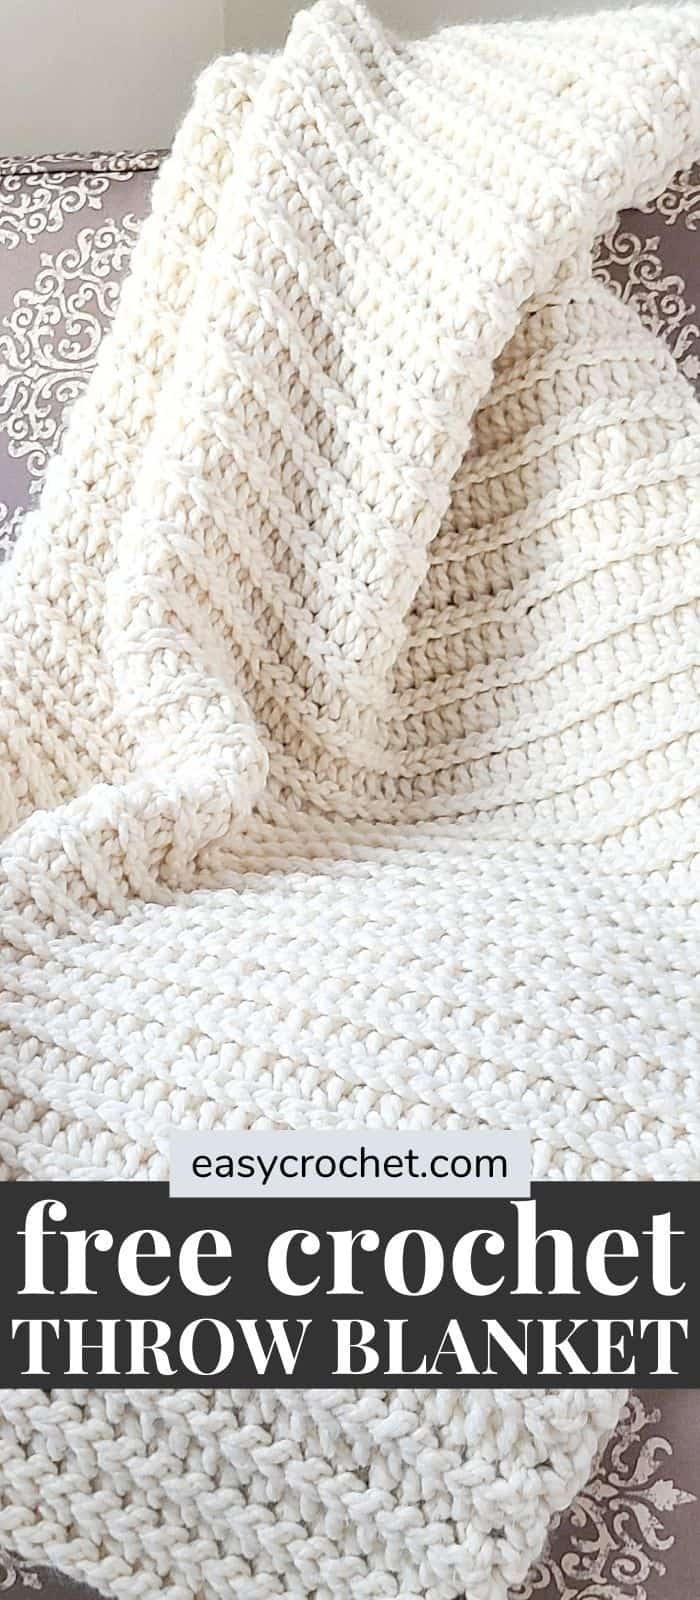 Free Crochet Throw Blanket that is easy to crochet and uses only two beginner-friendly stitches. via @easycrochetcom